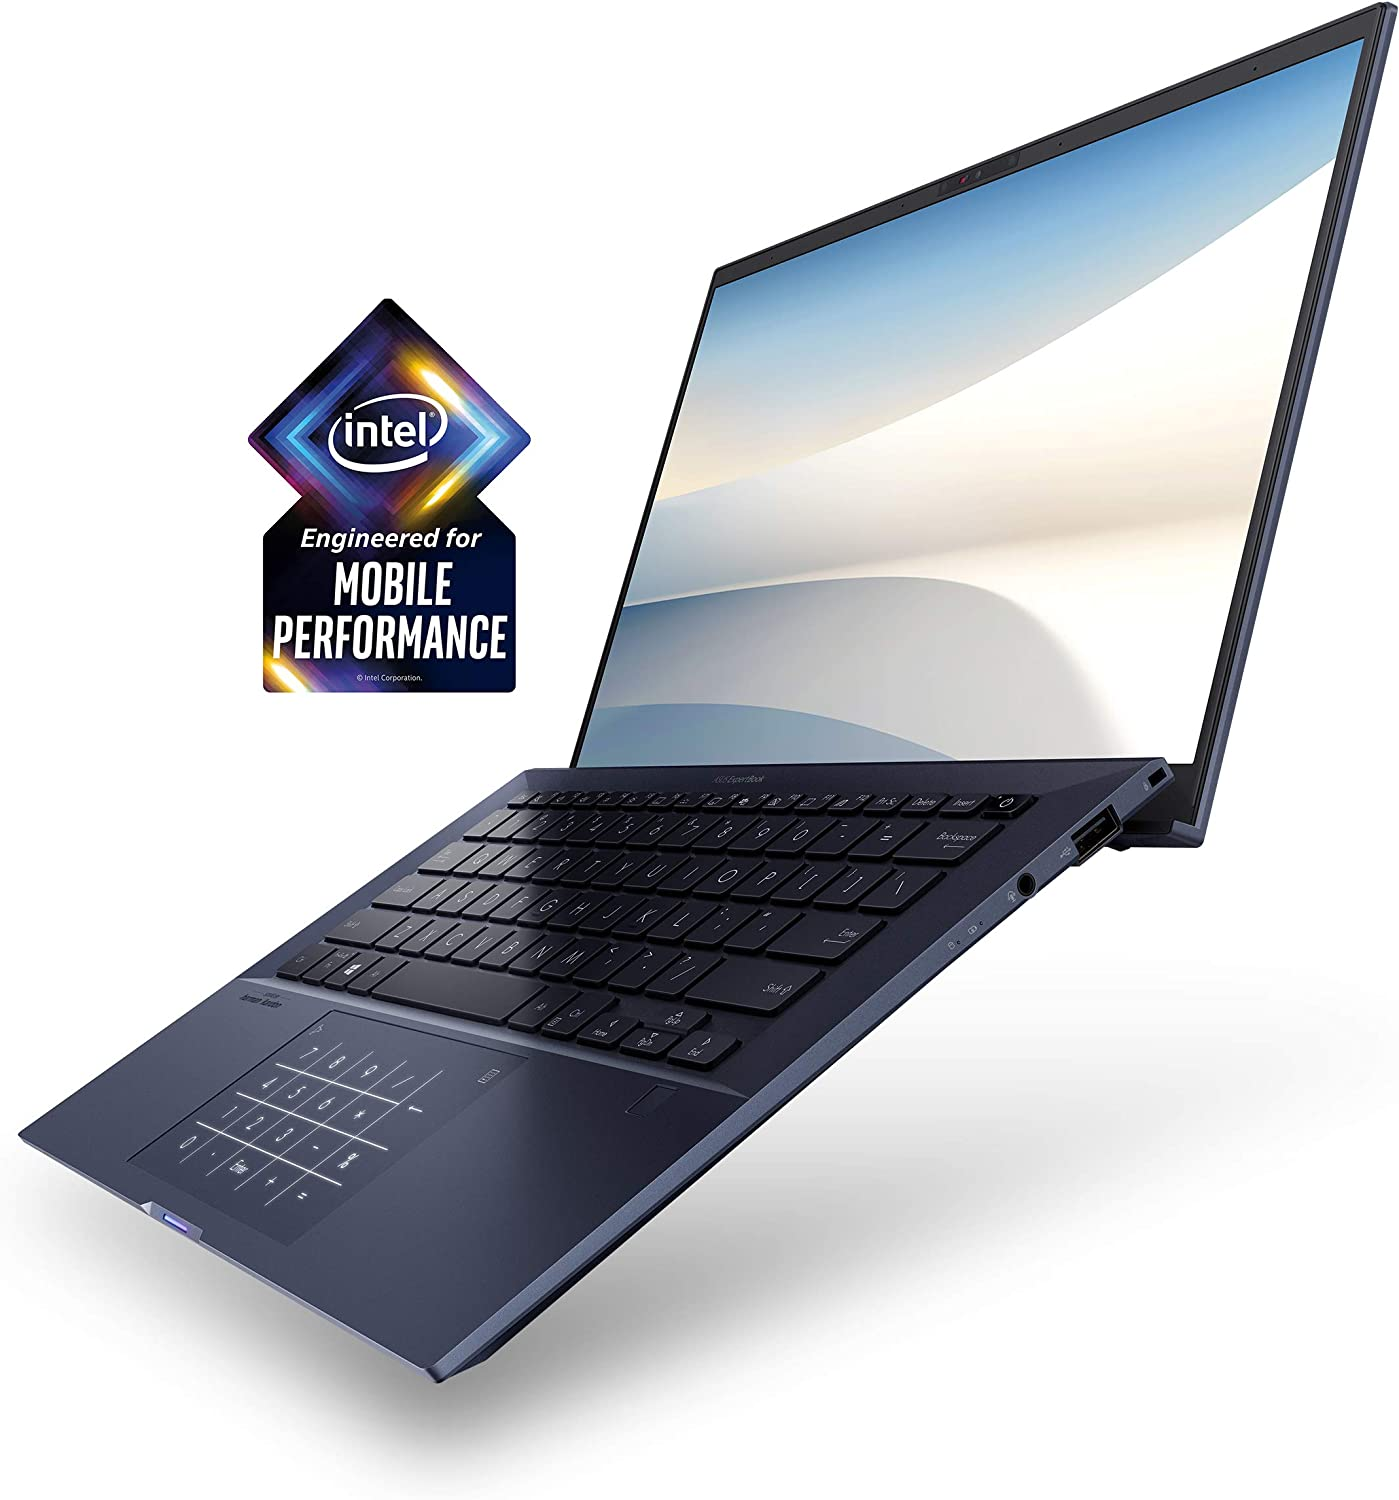 "ASUS ExpertBook B9450 Thin and Light Business-Laptop, 14"" FHD, Intel Core i7-10510U-Processor, 512GB PCIe SSD, 16GB-RAM, Windows 10 Pro, Up to 24 Hrs-Battery Life,-Sleeve, B9450FA-XS74"